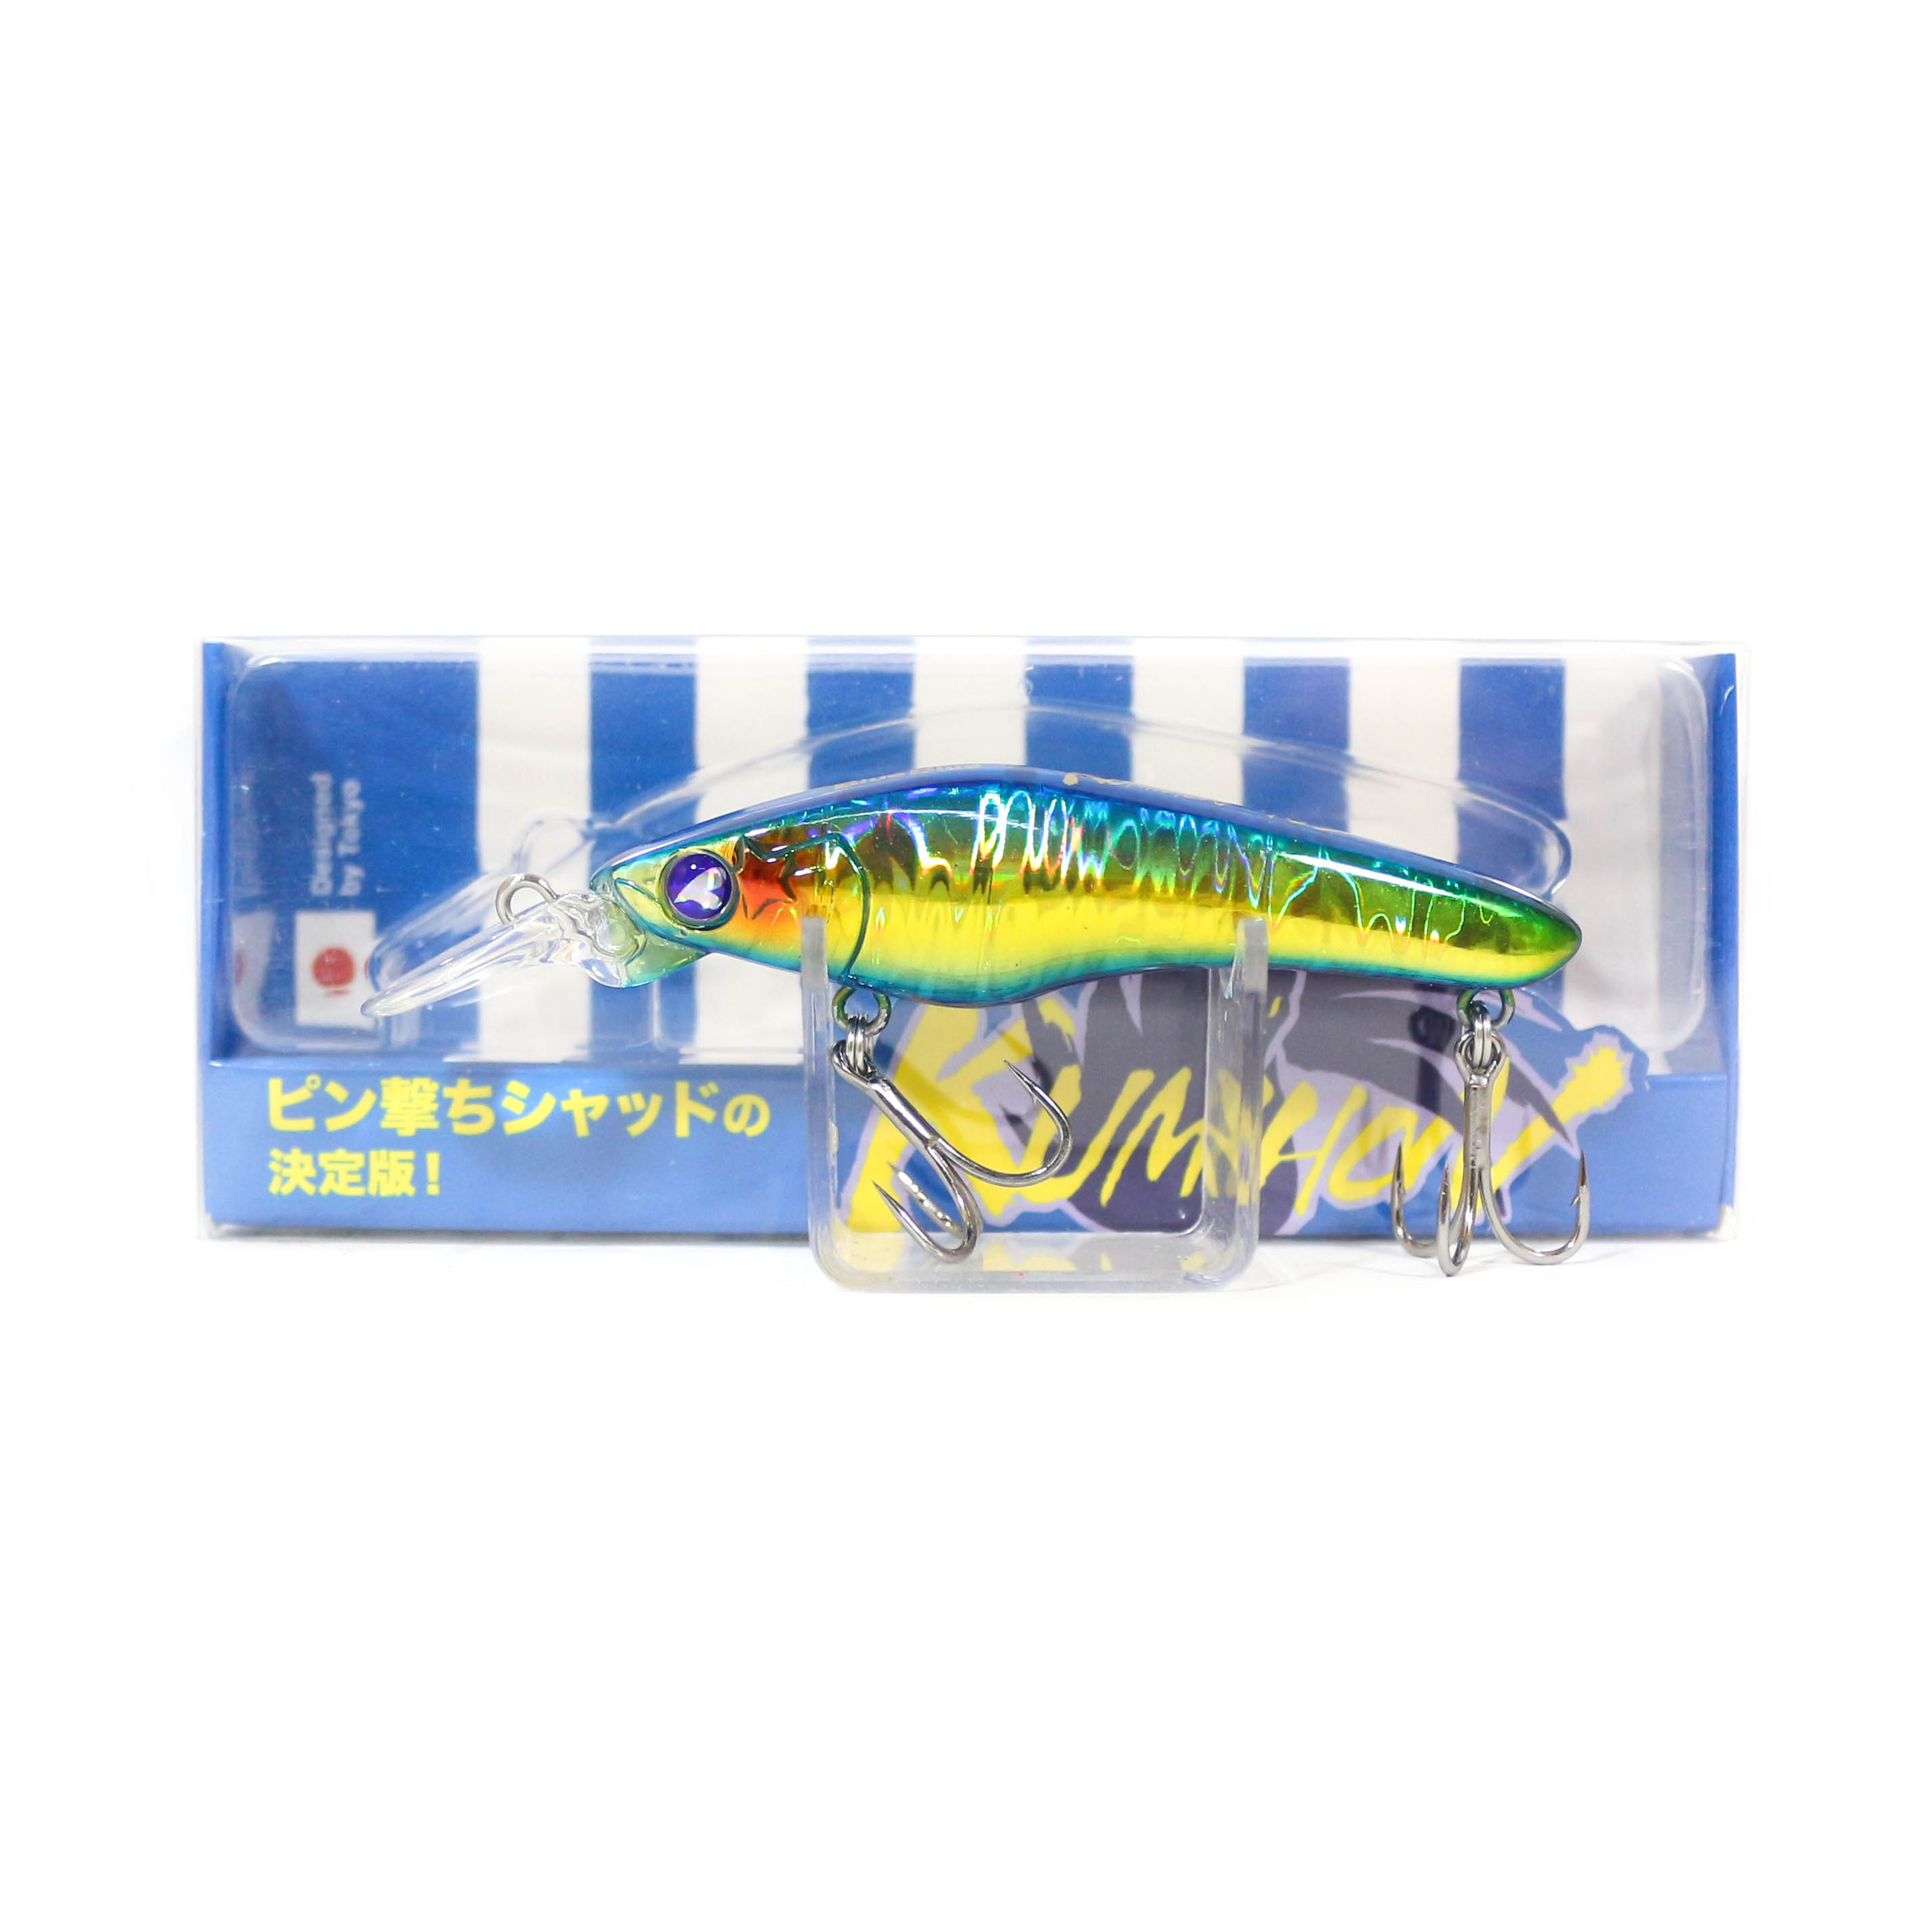 Blue Blue Kumihon 70S 9 grams Sinking Lure 12 (1689)